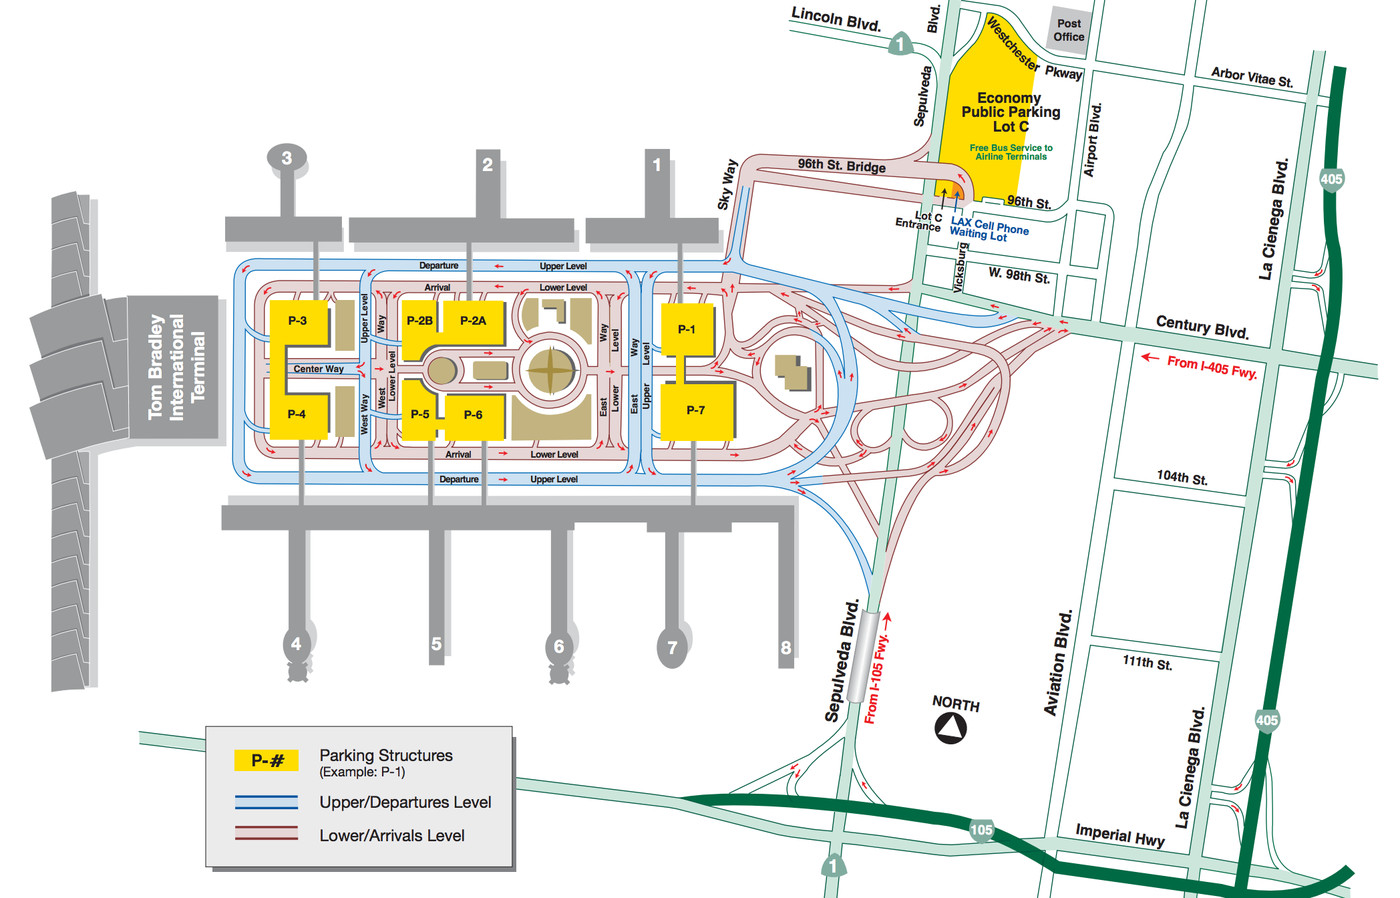 map of lax terminal Lax A Quick Guide To La S Airport Curbed La map of lax terminal